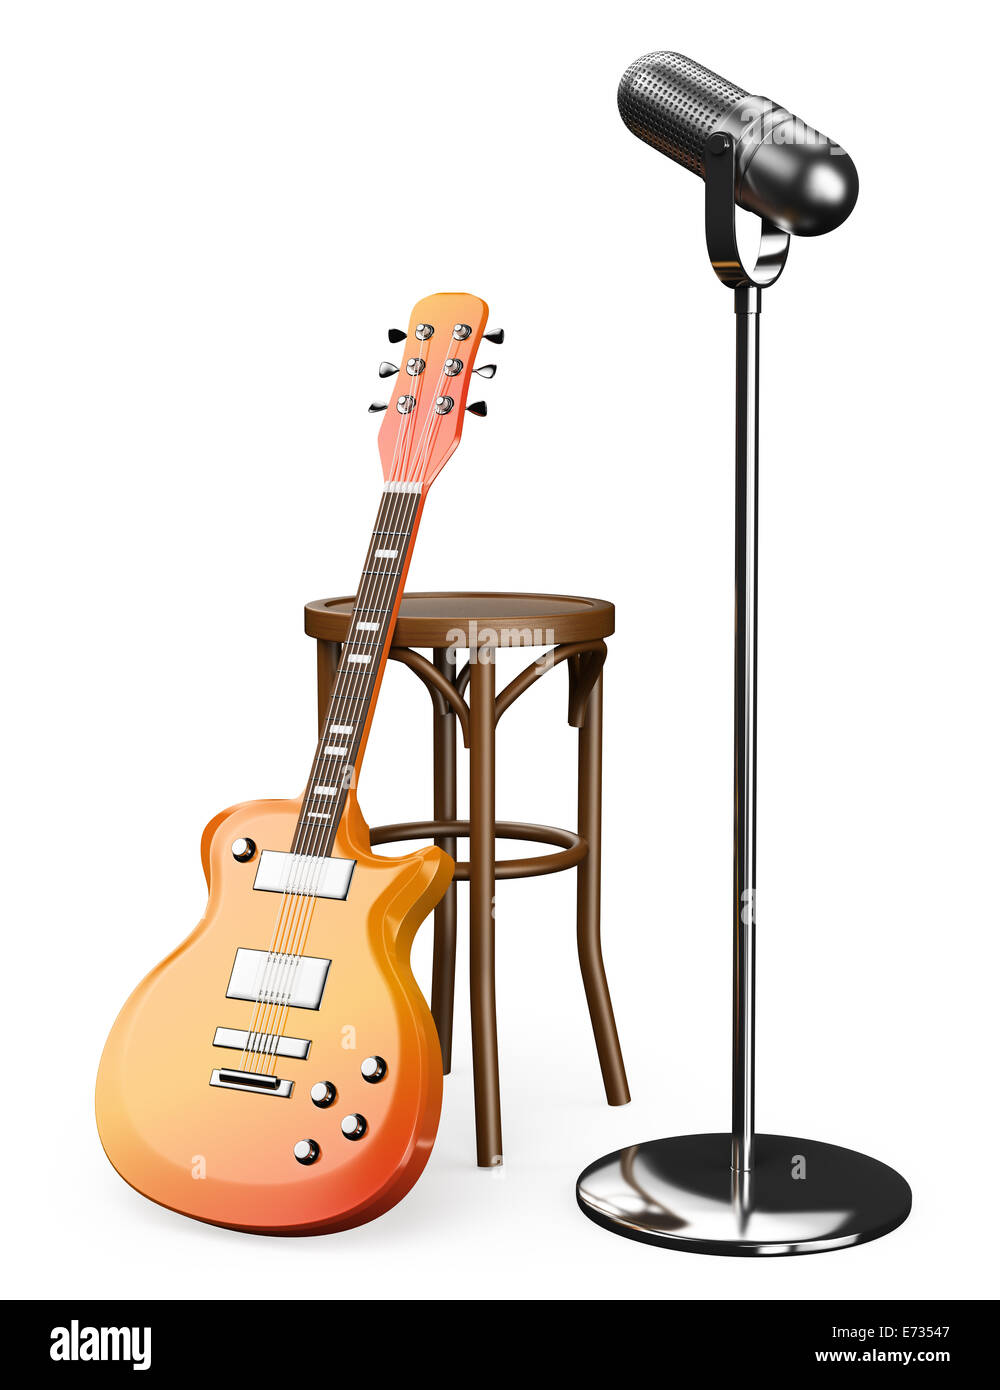 Fabulous Guitar Chair Cut Out Stock Images Pictures Alamy Onthecornerstone Fun Painted Chair Ideas Images Onthecornerstoneorg